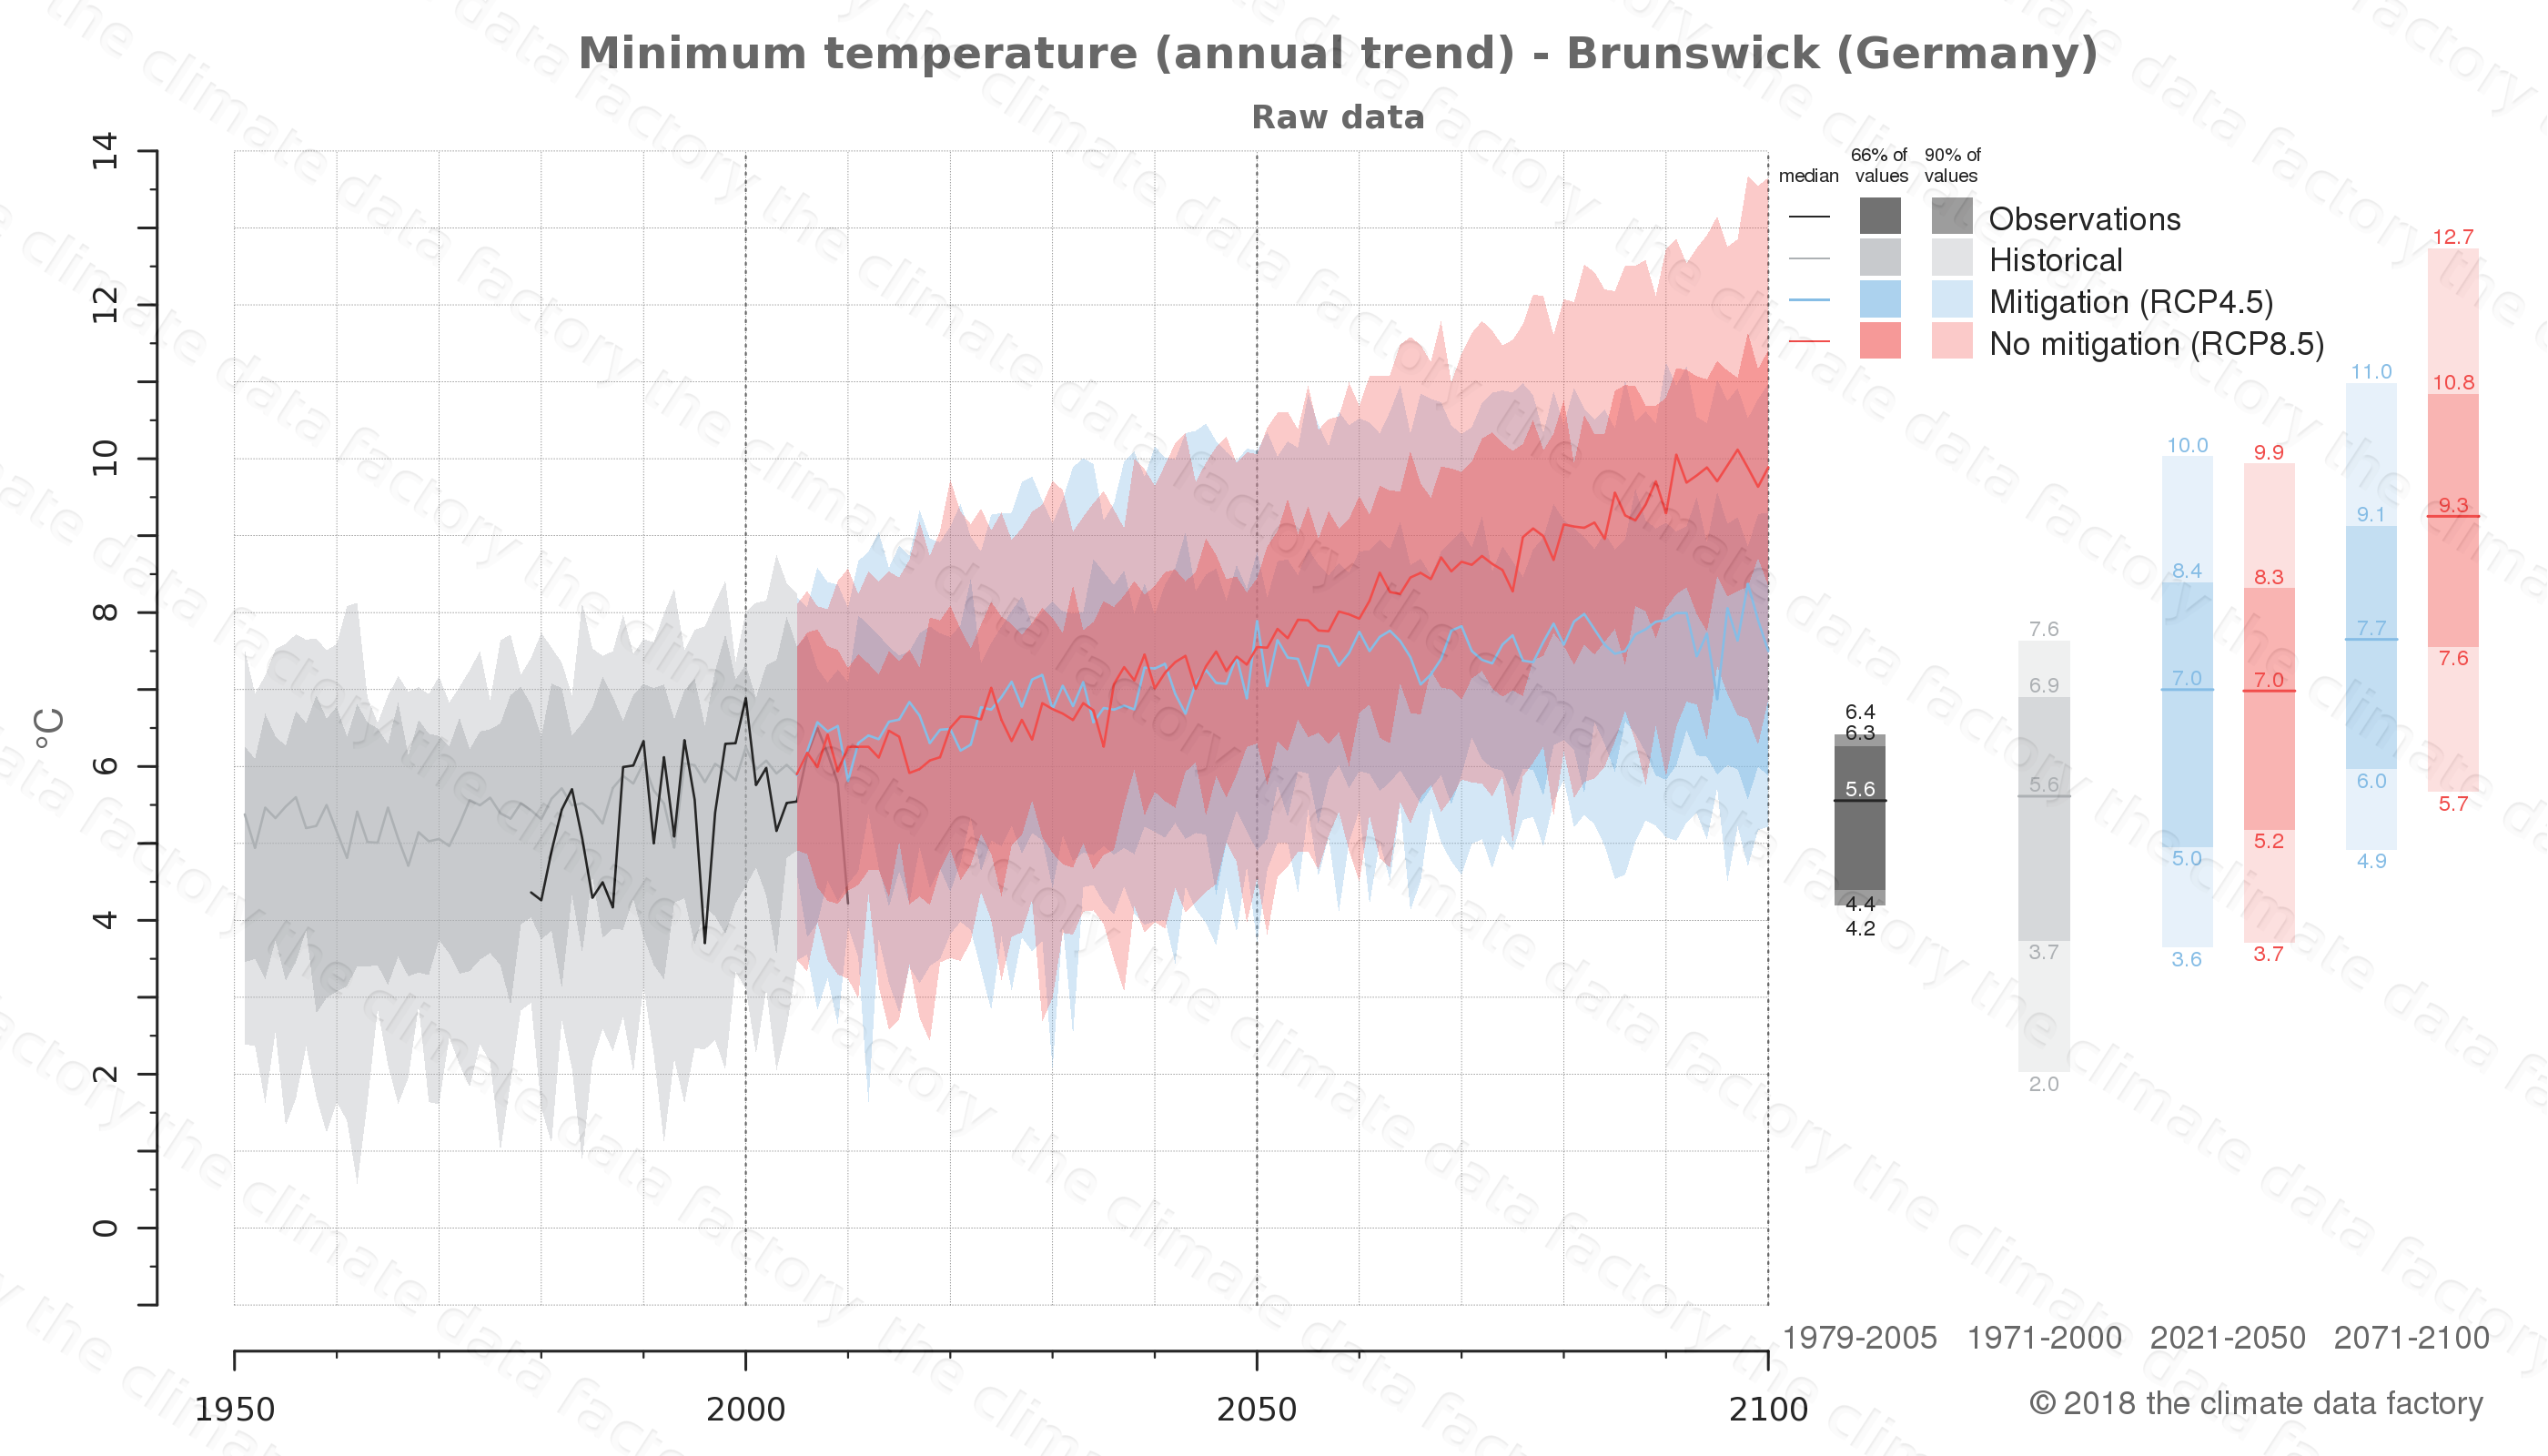 climate change data policy adaptation climate graph city data minimum-temperature brunswick germany